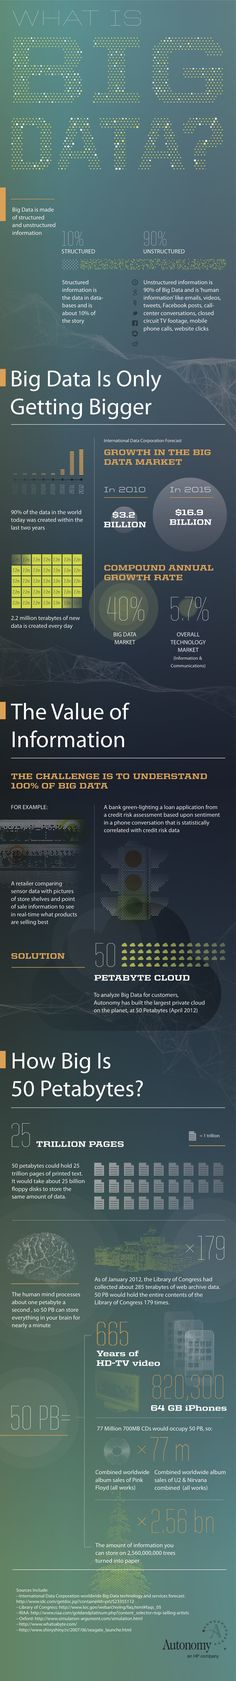 #infographic What is big data?